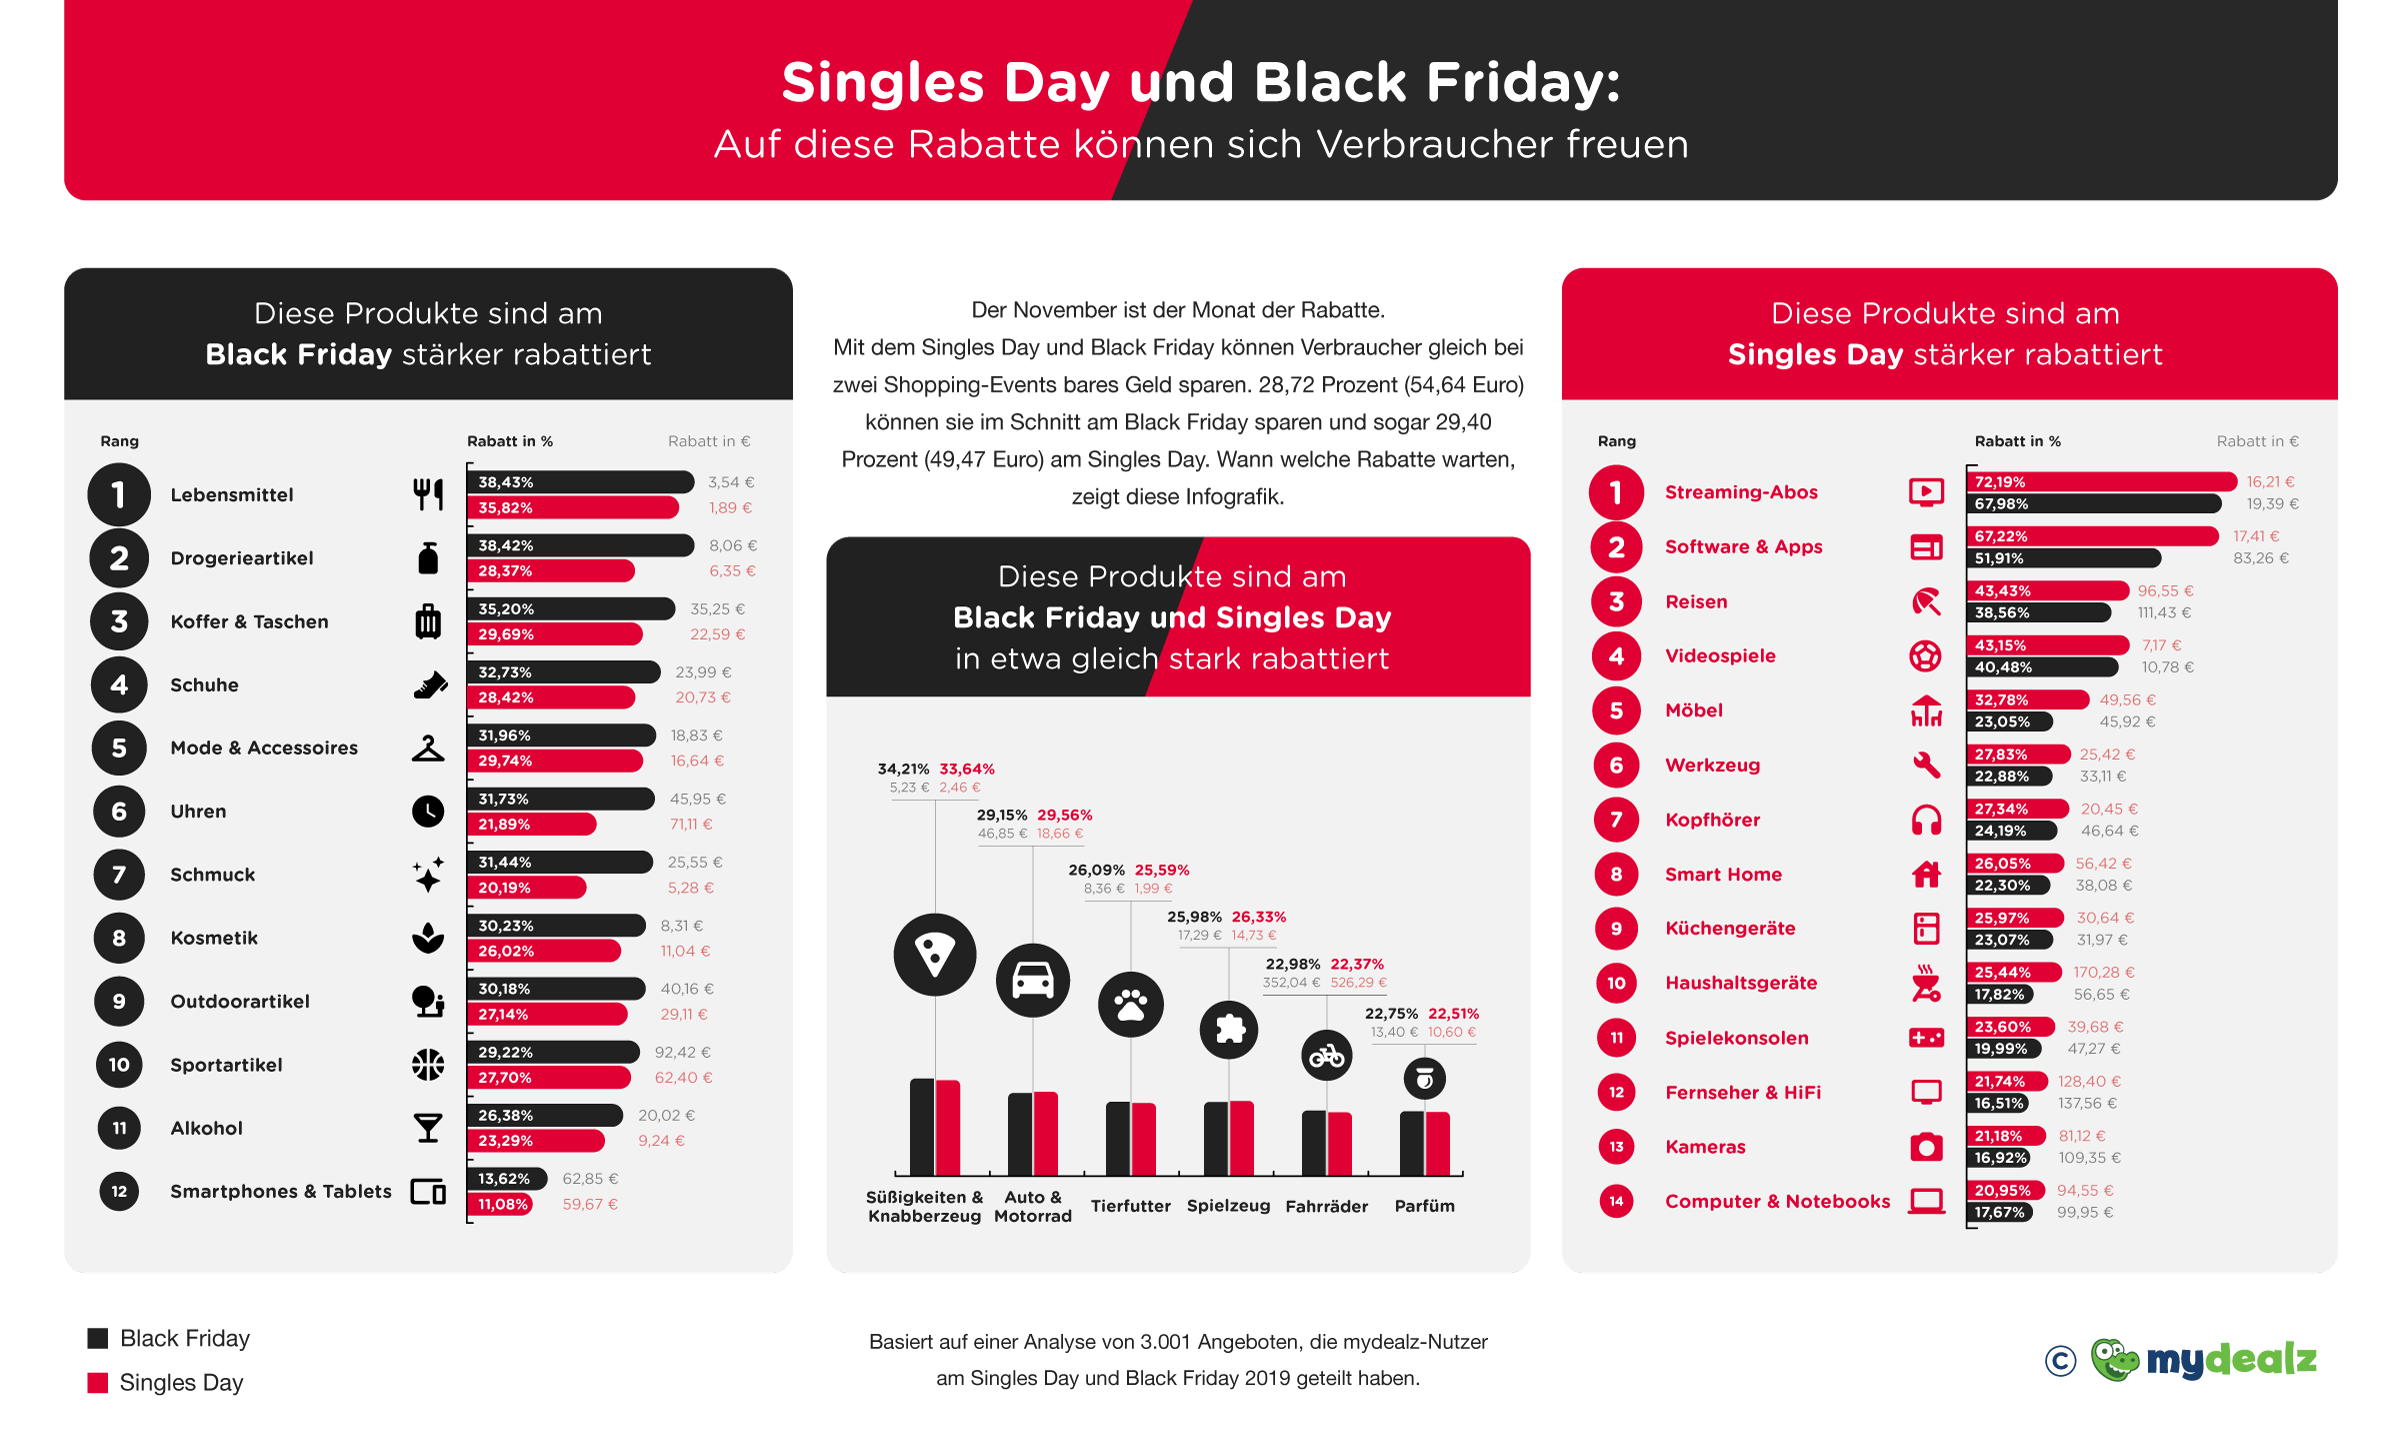 369500 infografik%20ersparnisse%20am%20black%20friday%20und%20cyber%20monday%20gesamt c0bd7f original 1604420322